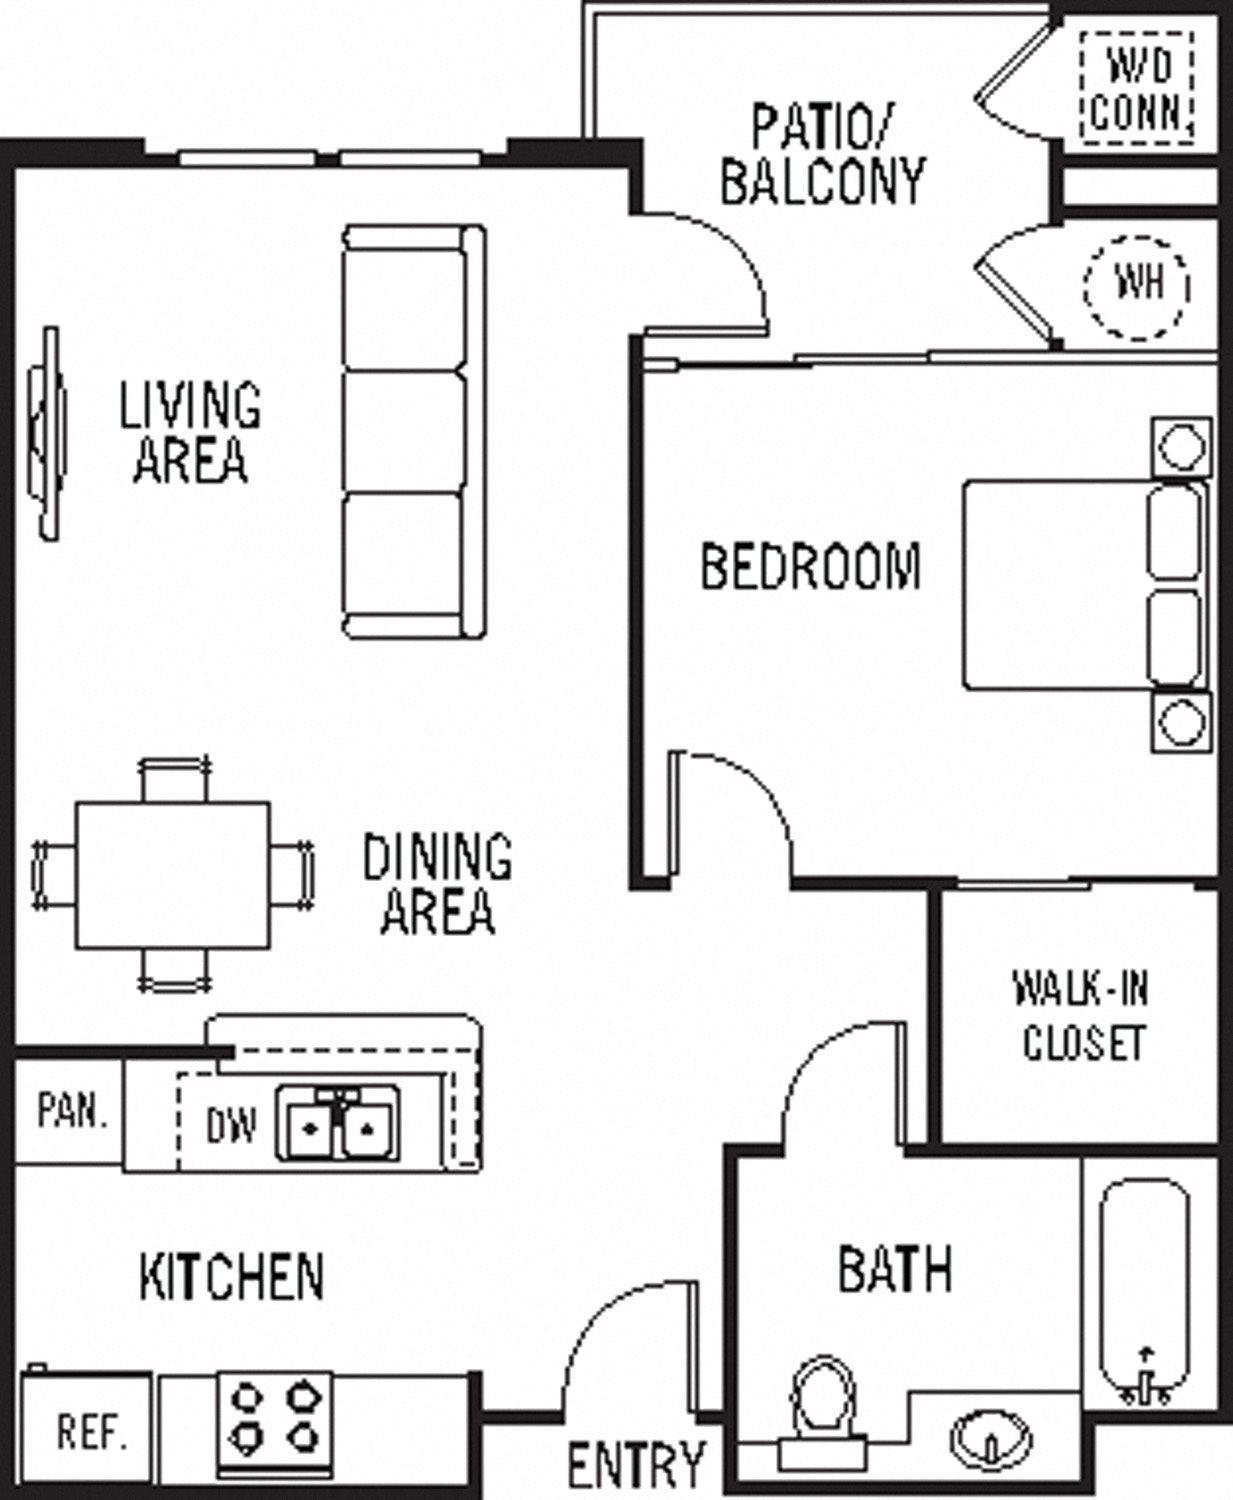 Ana Capa Floor Plan 1